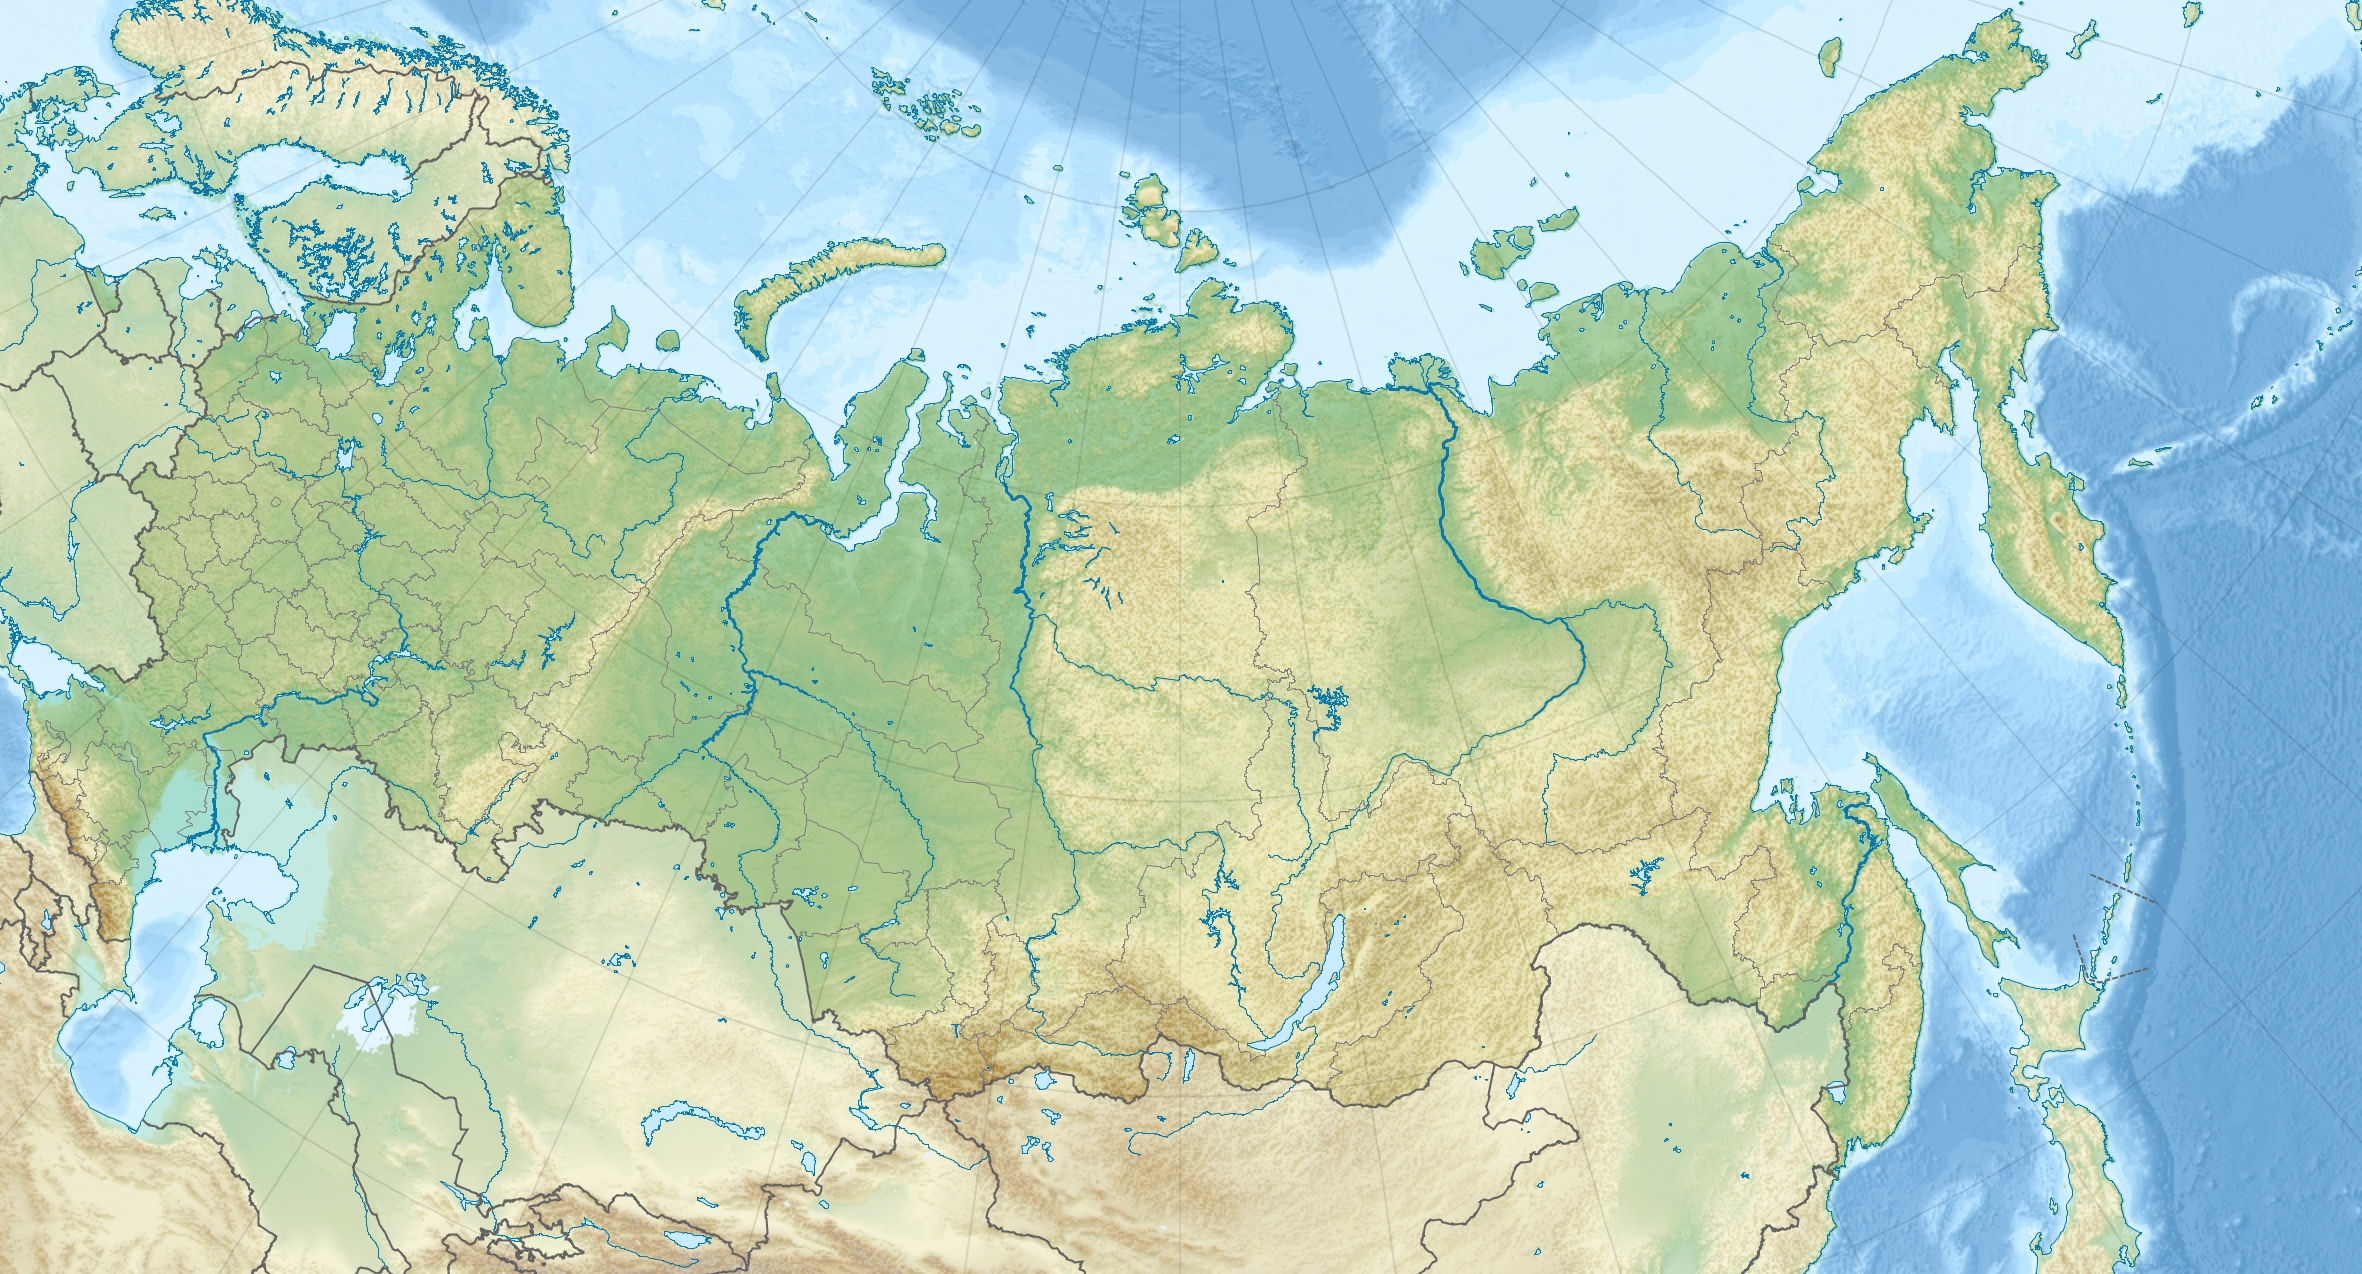 Tolbachik is located in Russia